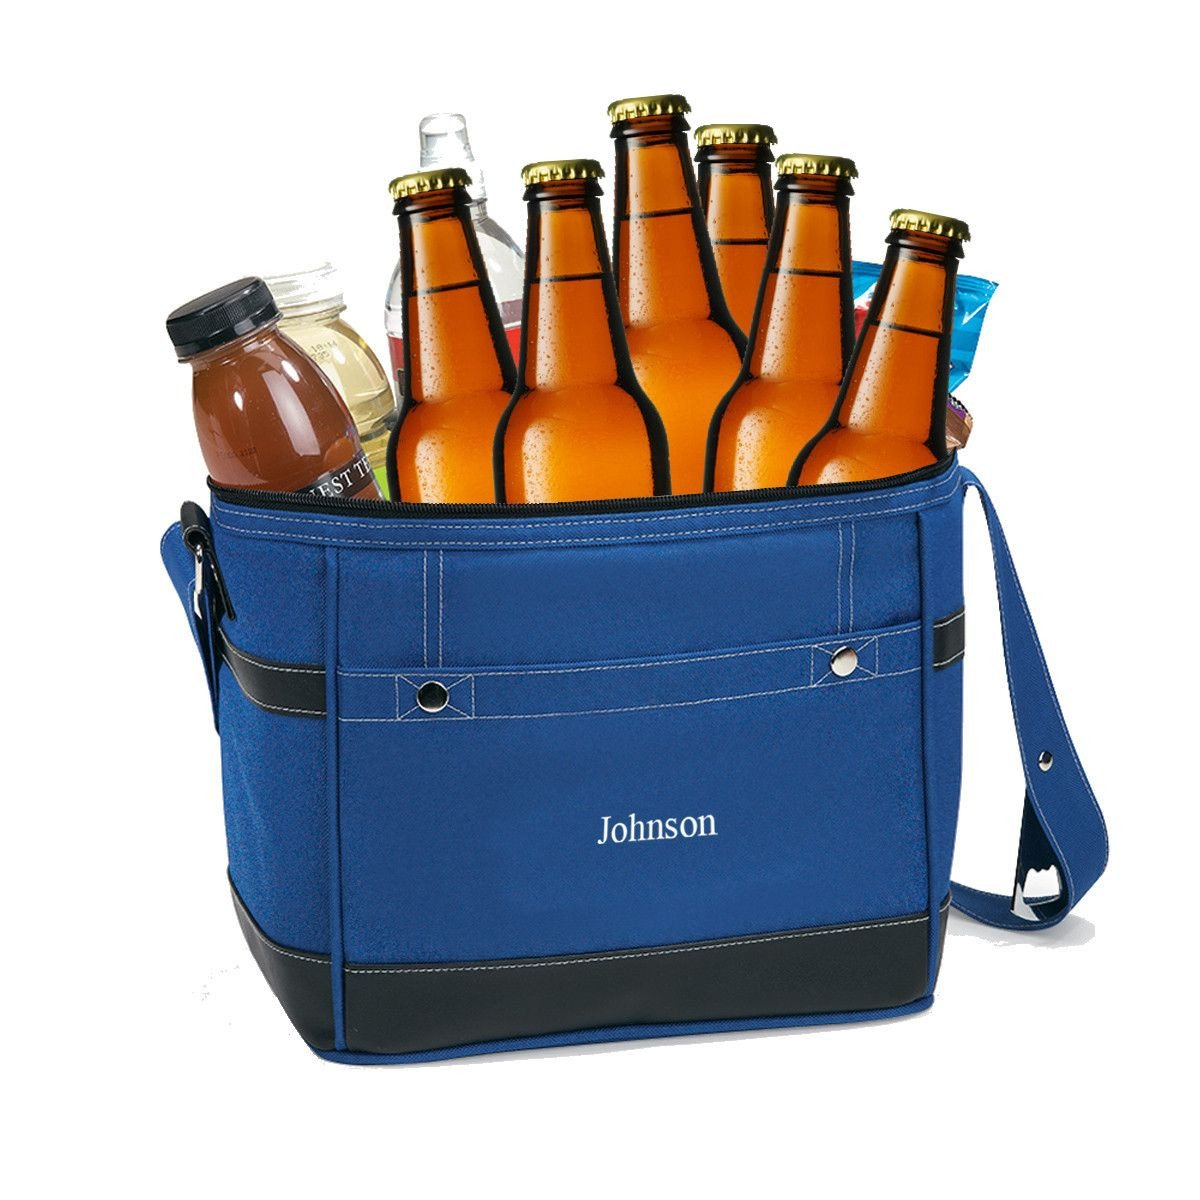 Personalized Coolers - Insulated - Groomsmen - Holds 12 Pack